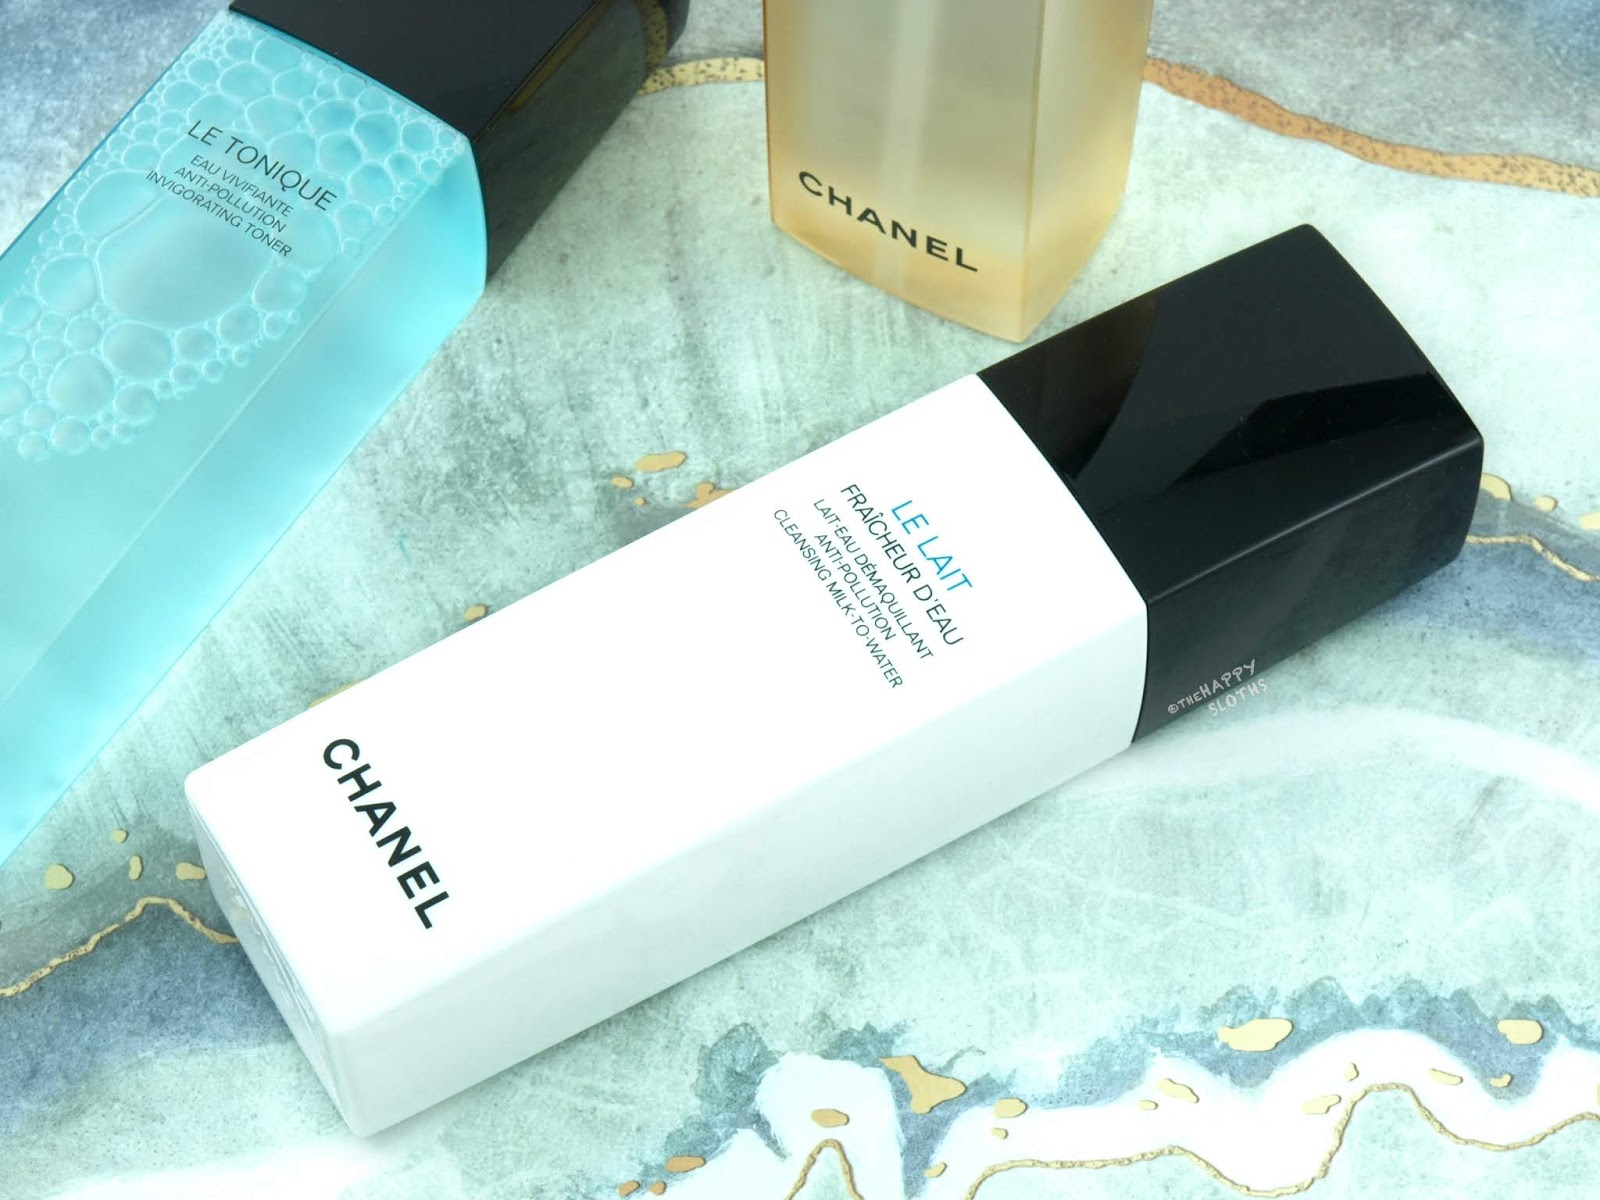 Chanel | Le Lait Anti-Pollution Cleansing Milk-To-Water: Review